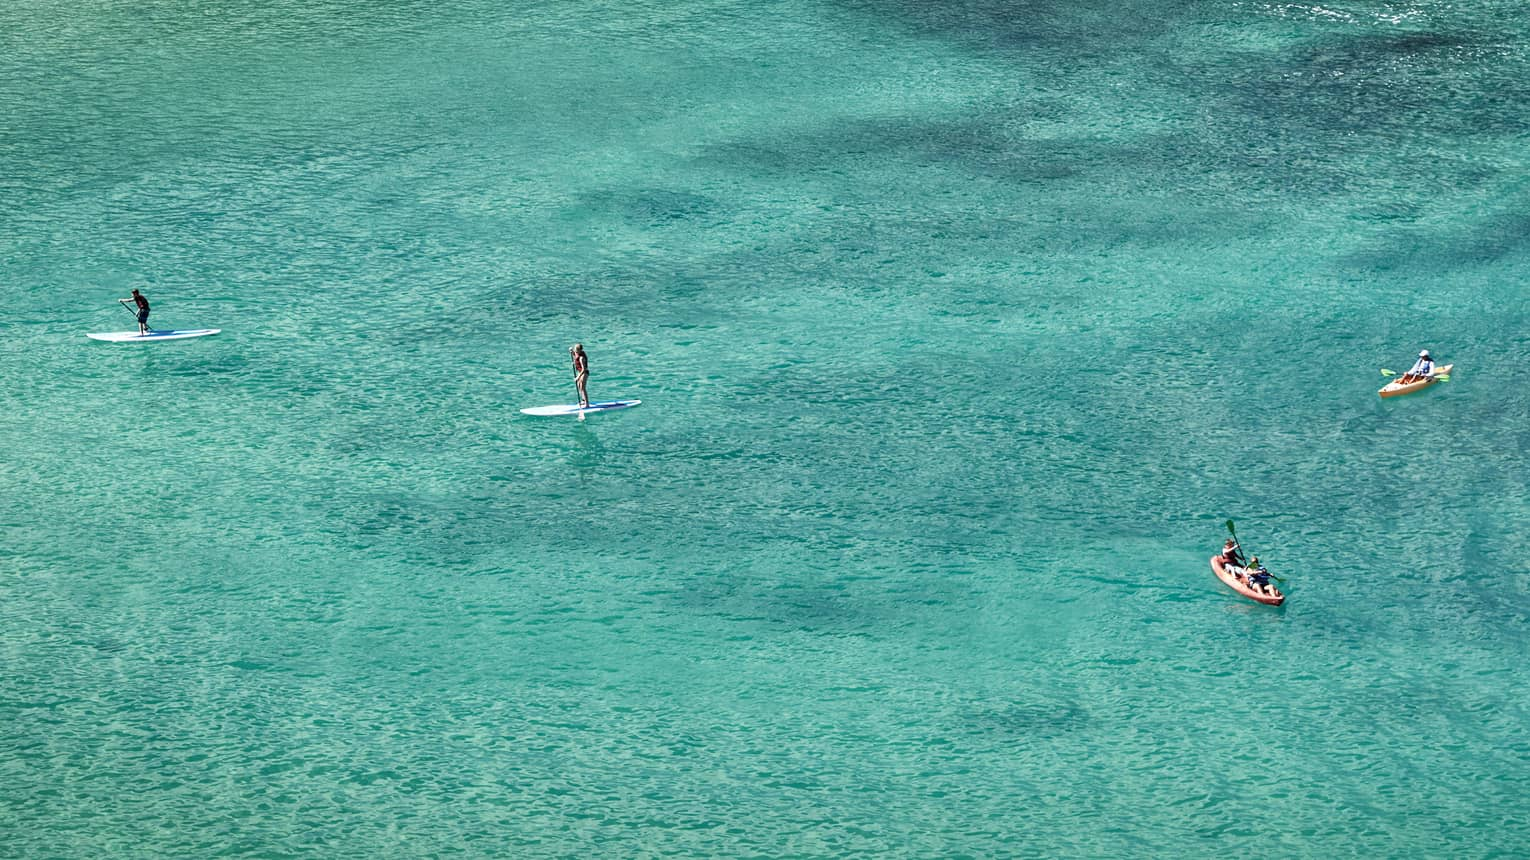 Aerial view of stand-up paddleboarders, boats on lagoon